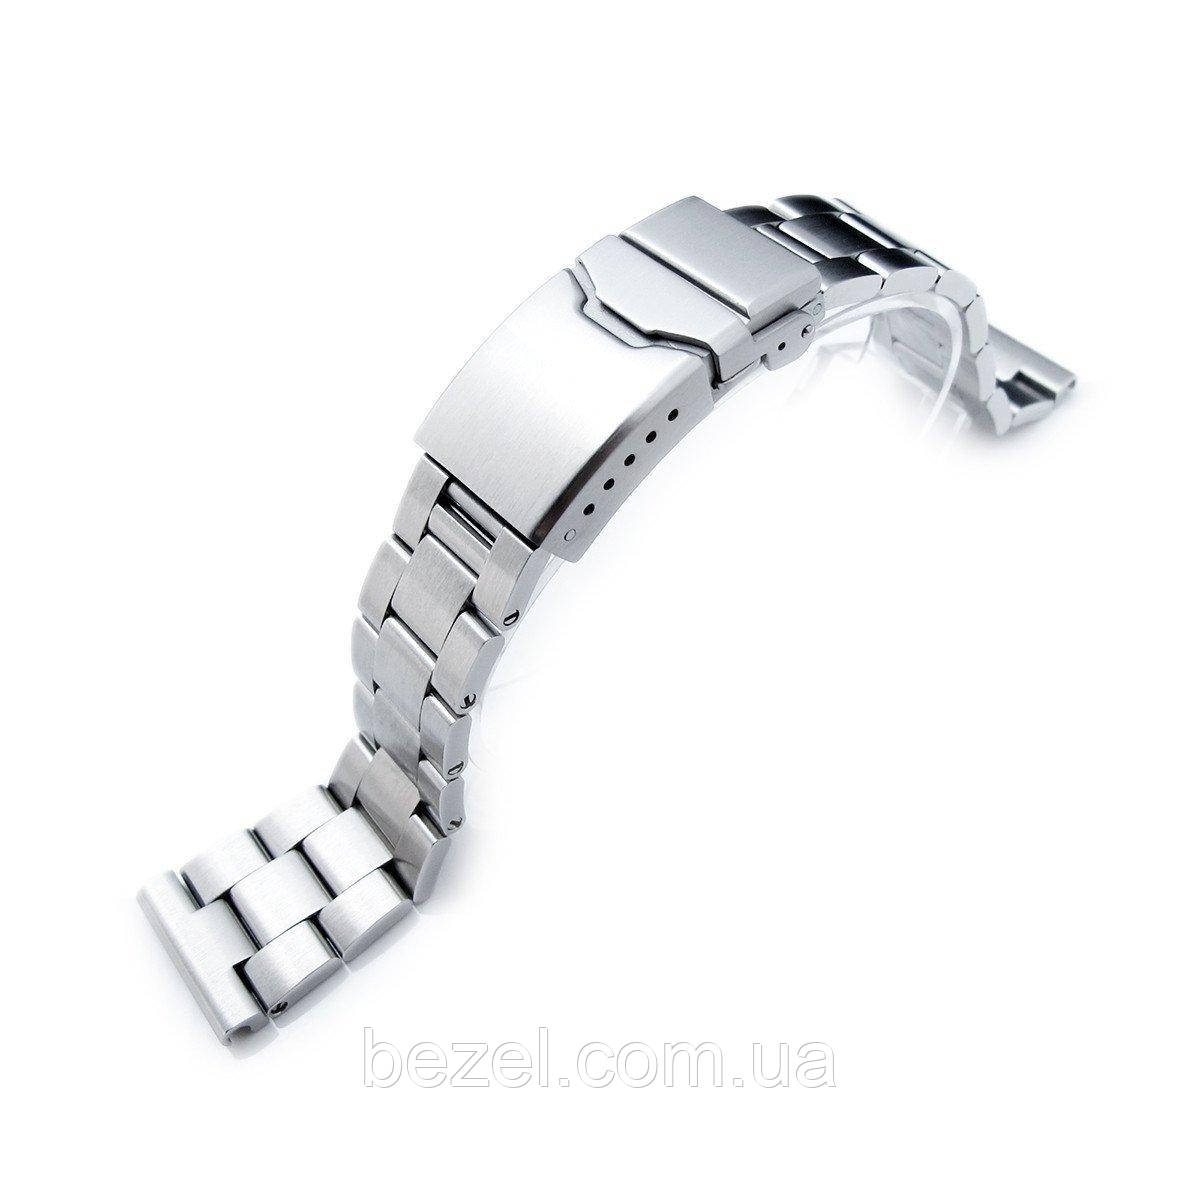 19mm, 20mm or 21mm Super Oyster Watch Bracelet Straight End Lug, Chamfer Clasp with Button